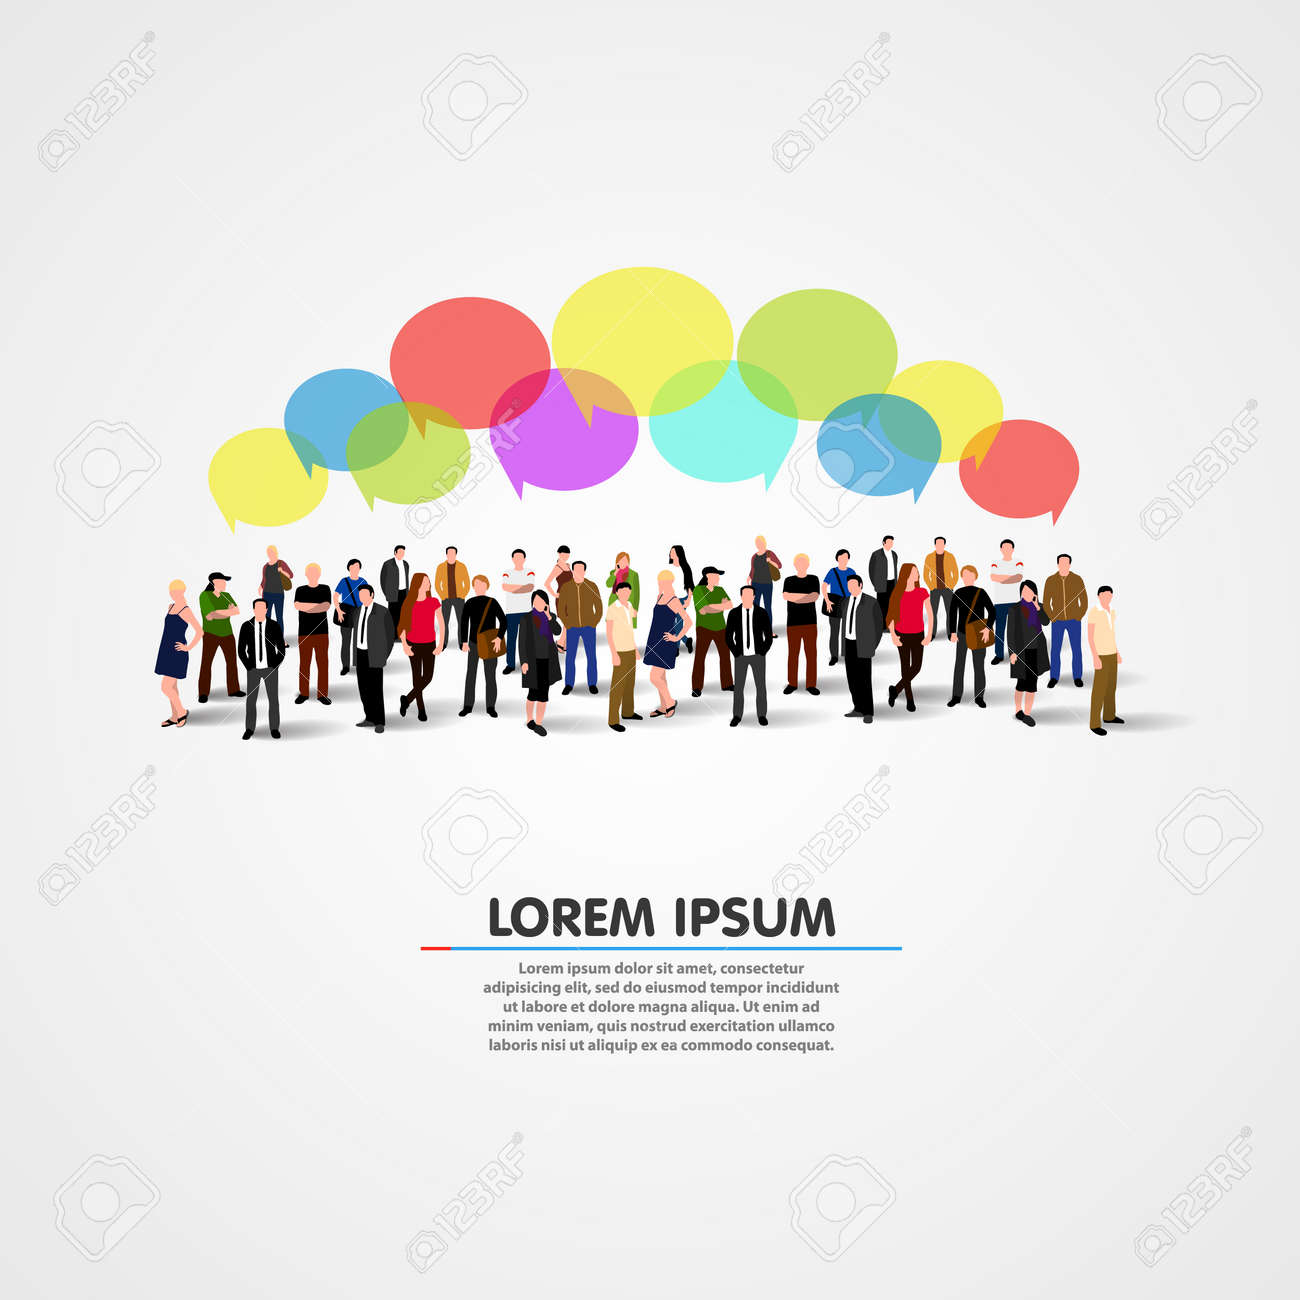 Business social networking and communication concept. Vector illustration Stock Vector - 35859382